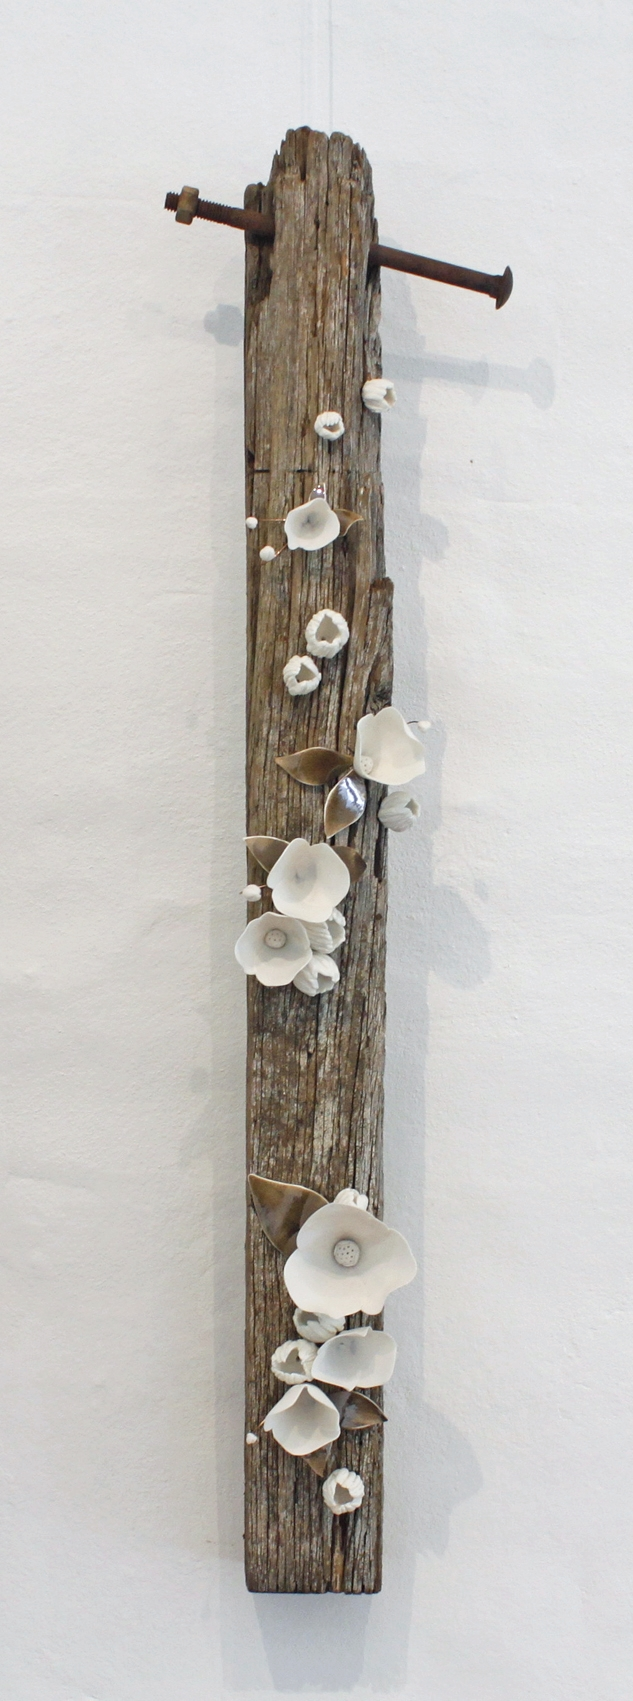 Amy Hick  Fence Post no.2 2015.   Hand built imperial porcelain, weathered fence post, clear glaze, bronze glaze, copper wire, approximately 90x21x14cm. SOLD  Photography: Madeline Young